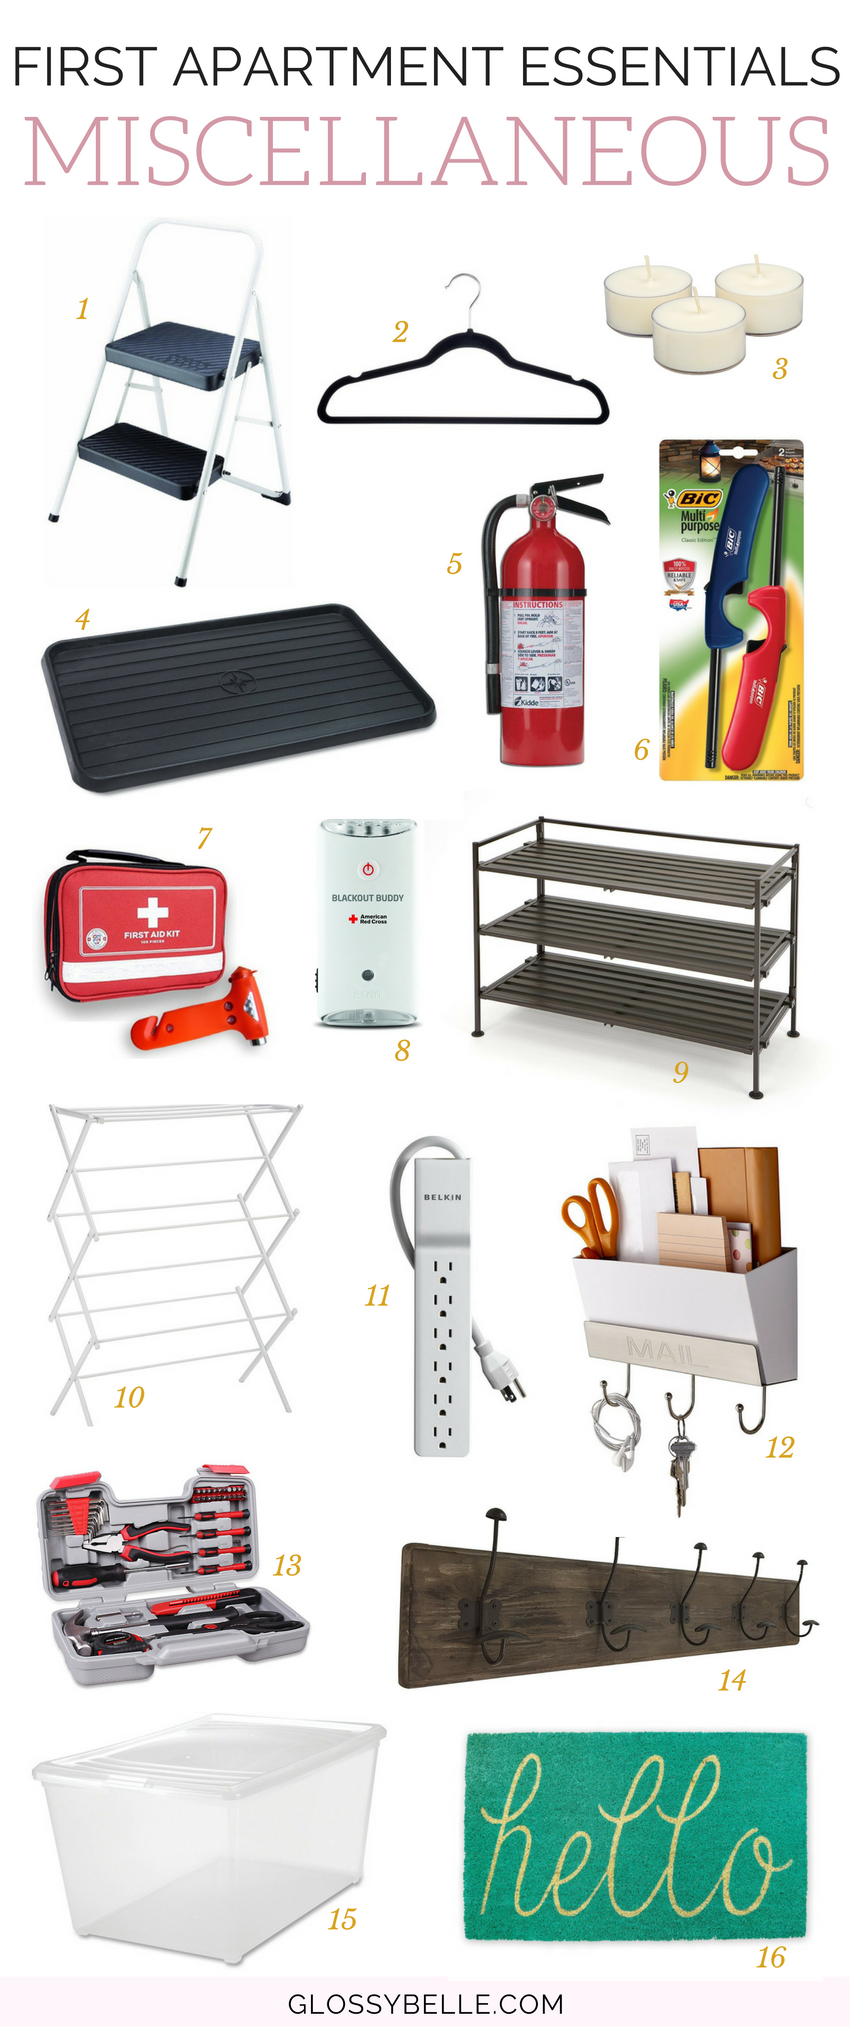 If you're about to move out into your first apartment, here are the most important apartment essentials you'll need to be ready to move out on your own. adulting   move out for the first time   moving out   independence   college essentials   college dorm   room essentials   home decor   miscellaneous essentials #apartment #furniture #furnitureideas #adulting #homedecor #homedesign #roomdecor